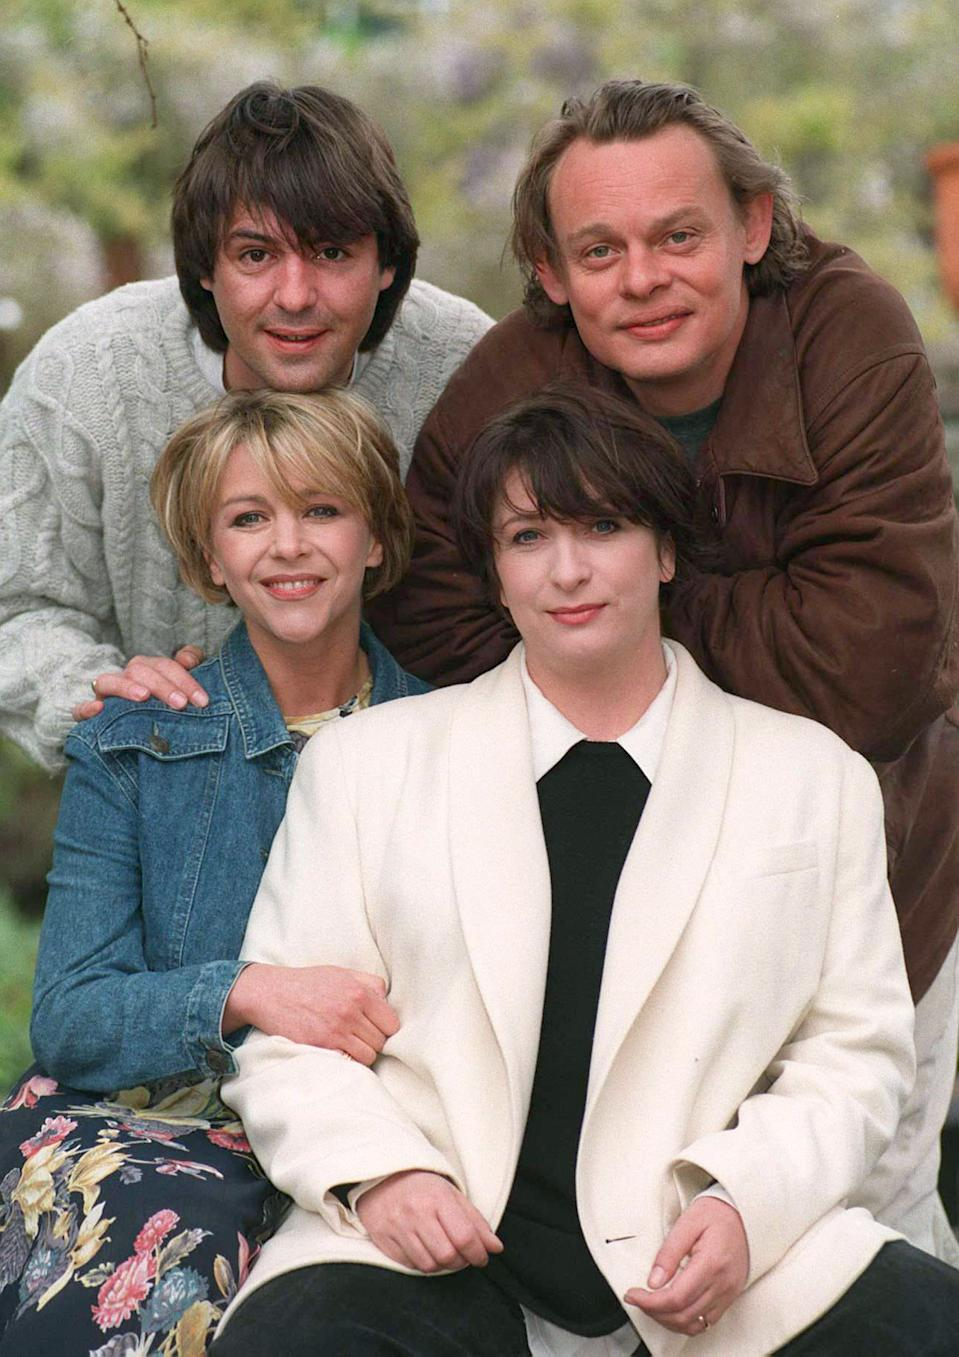 Stars of the BBC-1 series Men Behaving Badly ; Martin Clunes (top r) and Neil Morrissey, Leslie Ash (bottom left) and Caroline Quentin.   * 22/5/96 Caroline Quentin suing her agent. 27/8/96 The show, which  won the 1995 winner of Best Comedy in the National Television Awards (The Viewers Choice), has been nominated for the same  award again this year.   (Photo by Rebecca Naden - PA Images/PA Images via Getty Images)